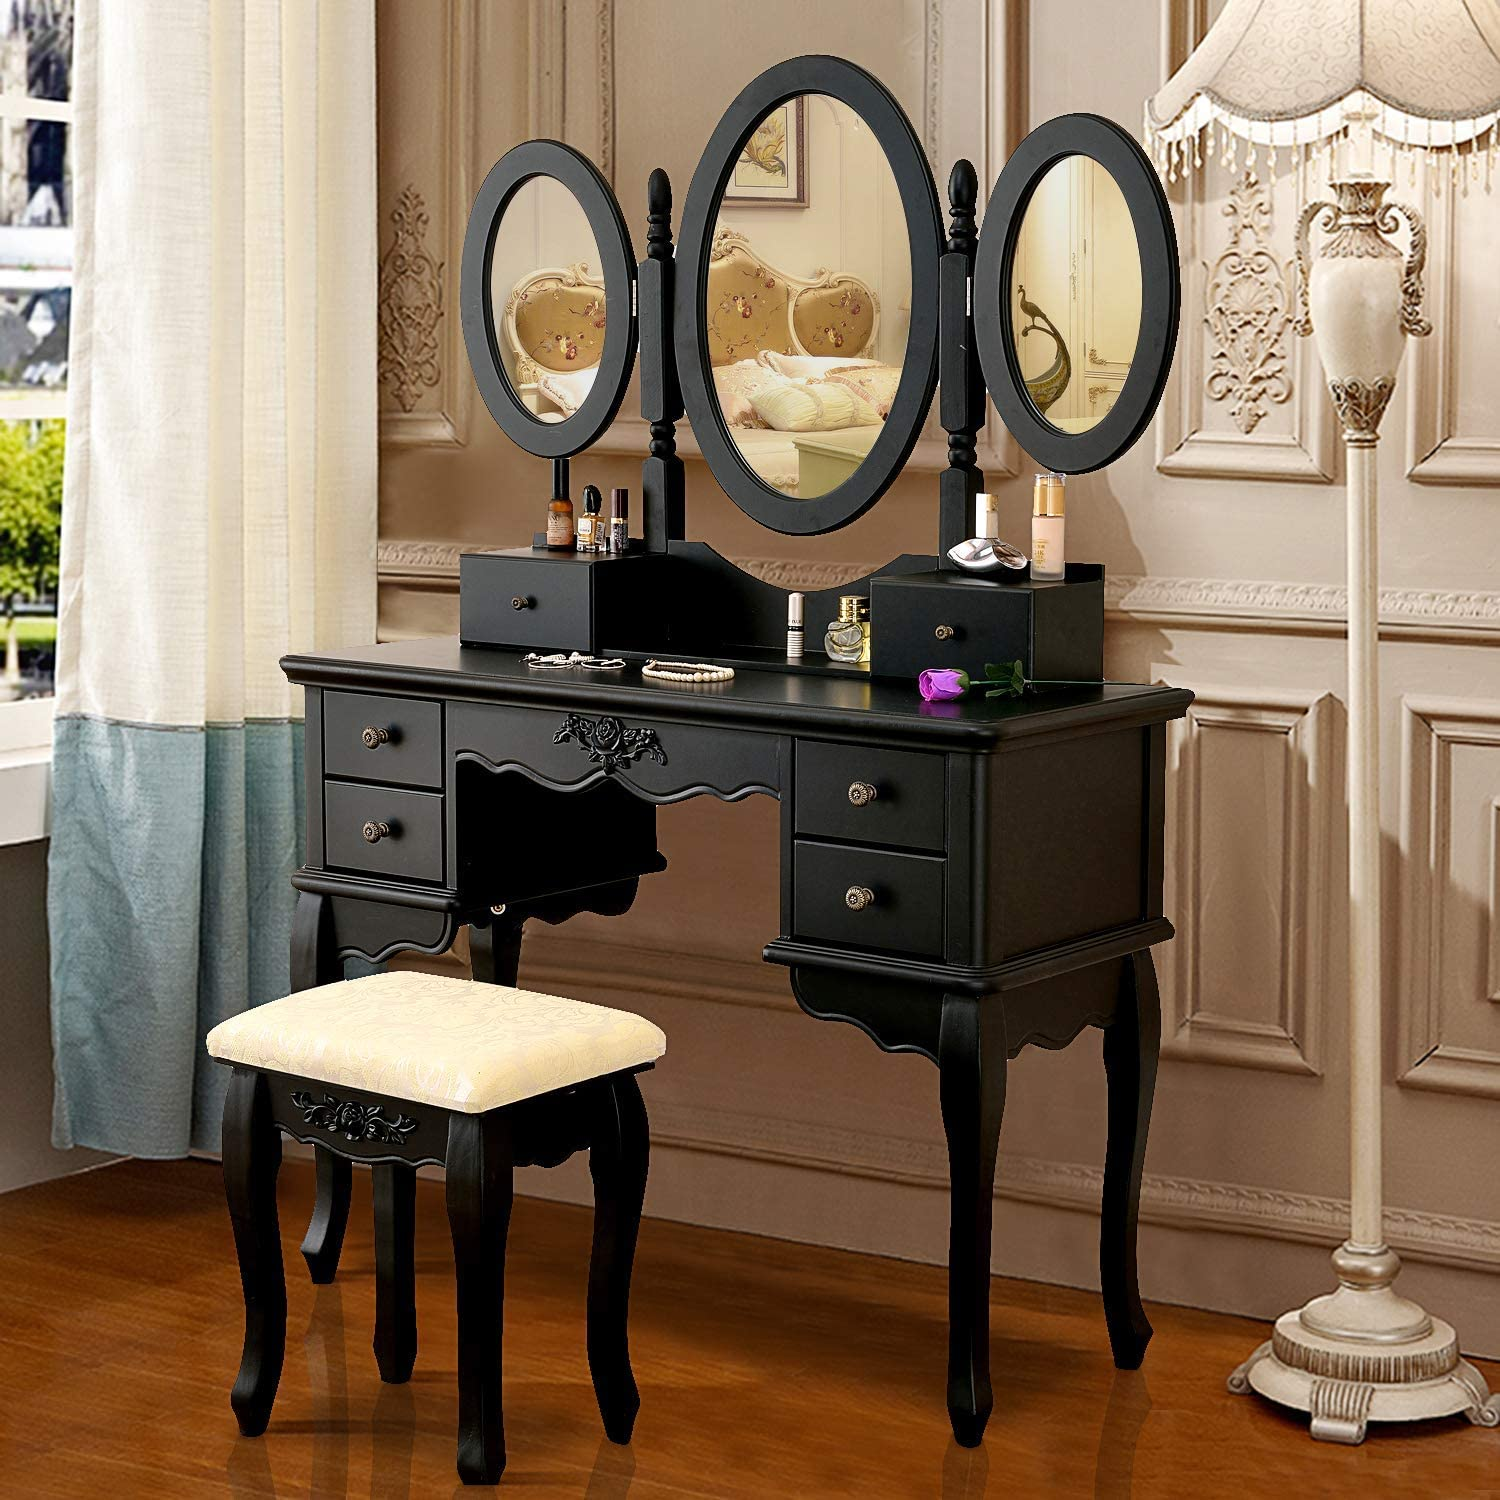 Vanity Makeup Table Set Tri-Folding Mirror Dressing Table with Padded Stool and 6 Drawers, Bedroom Vanity Table Writing Desk with Removable for Girls Women,Black